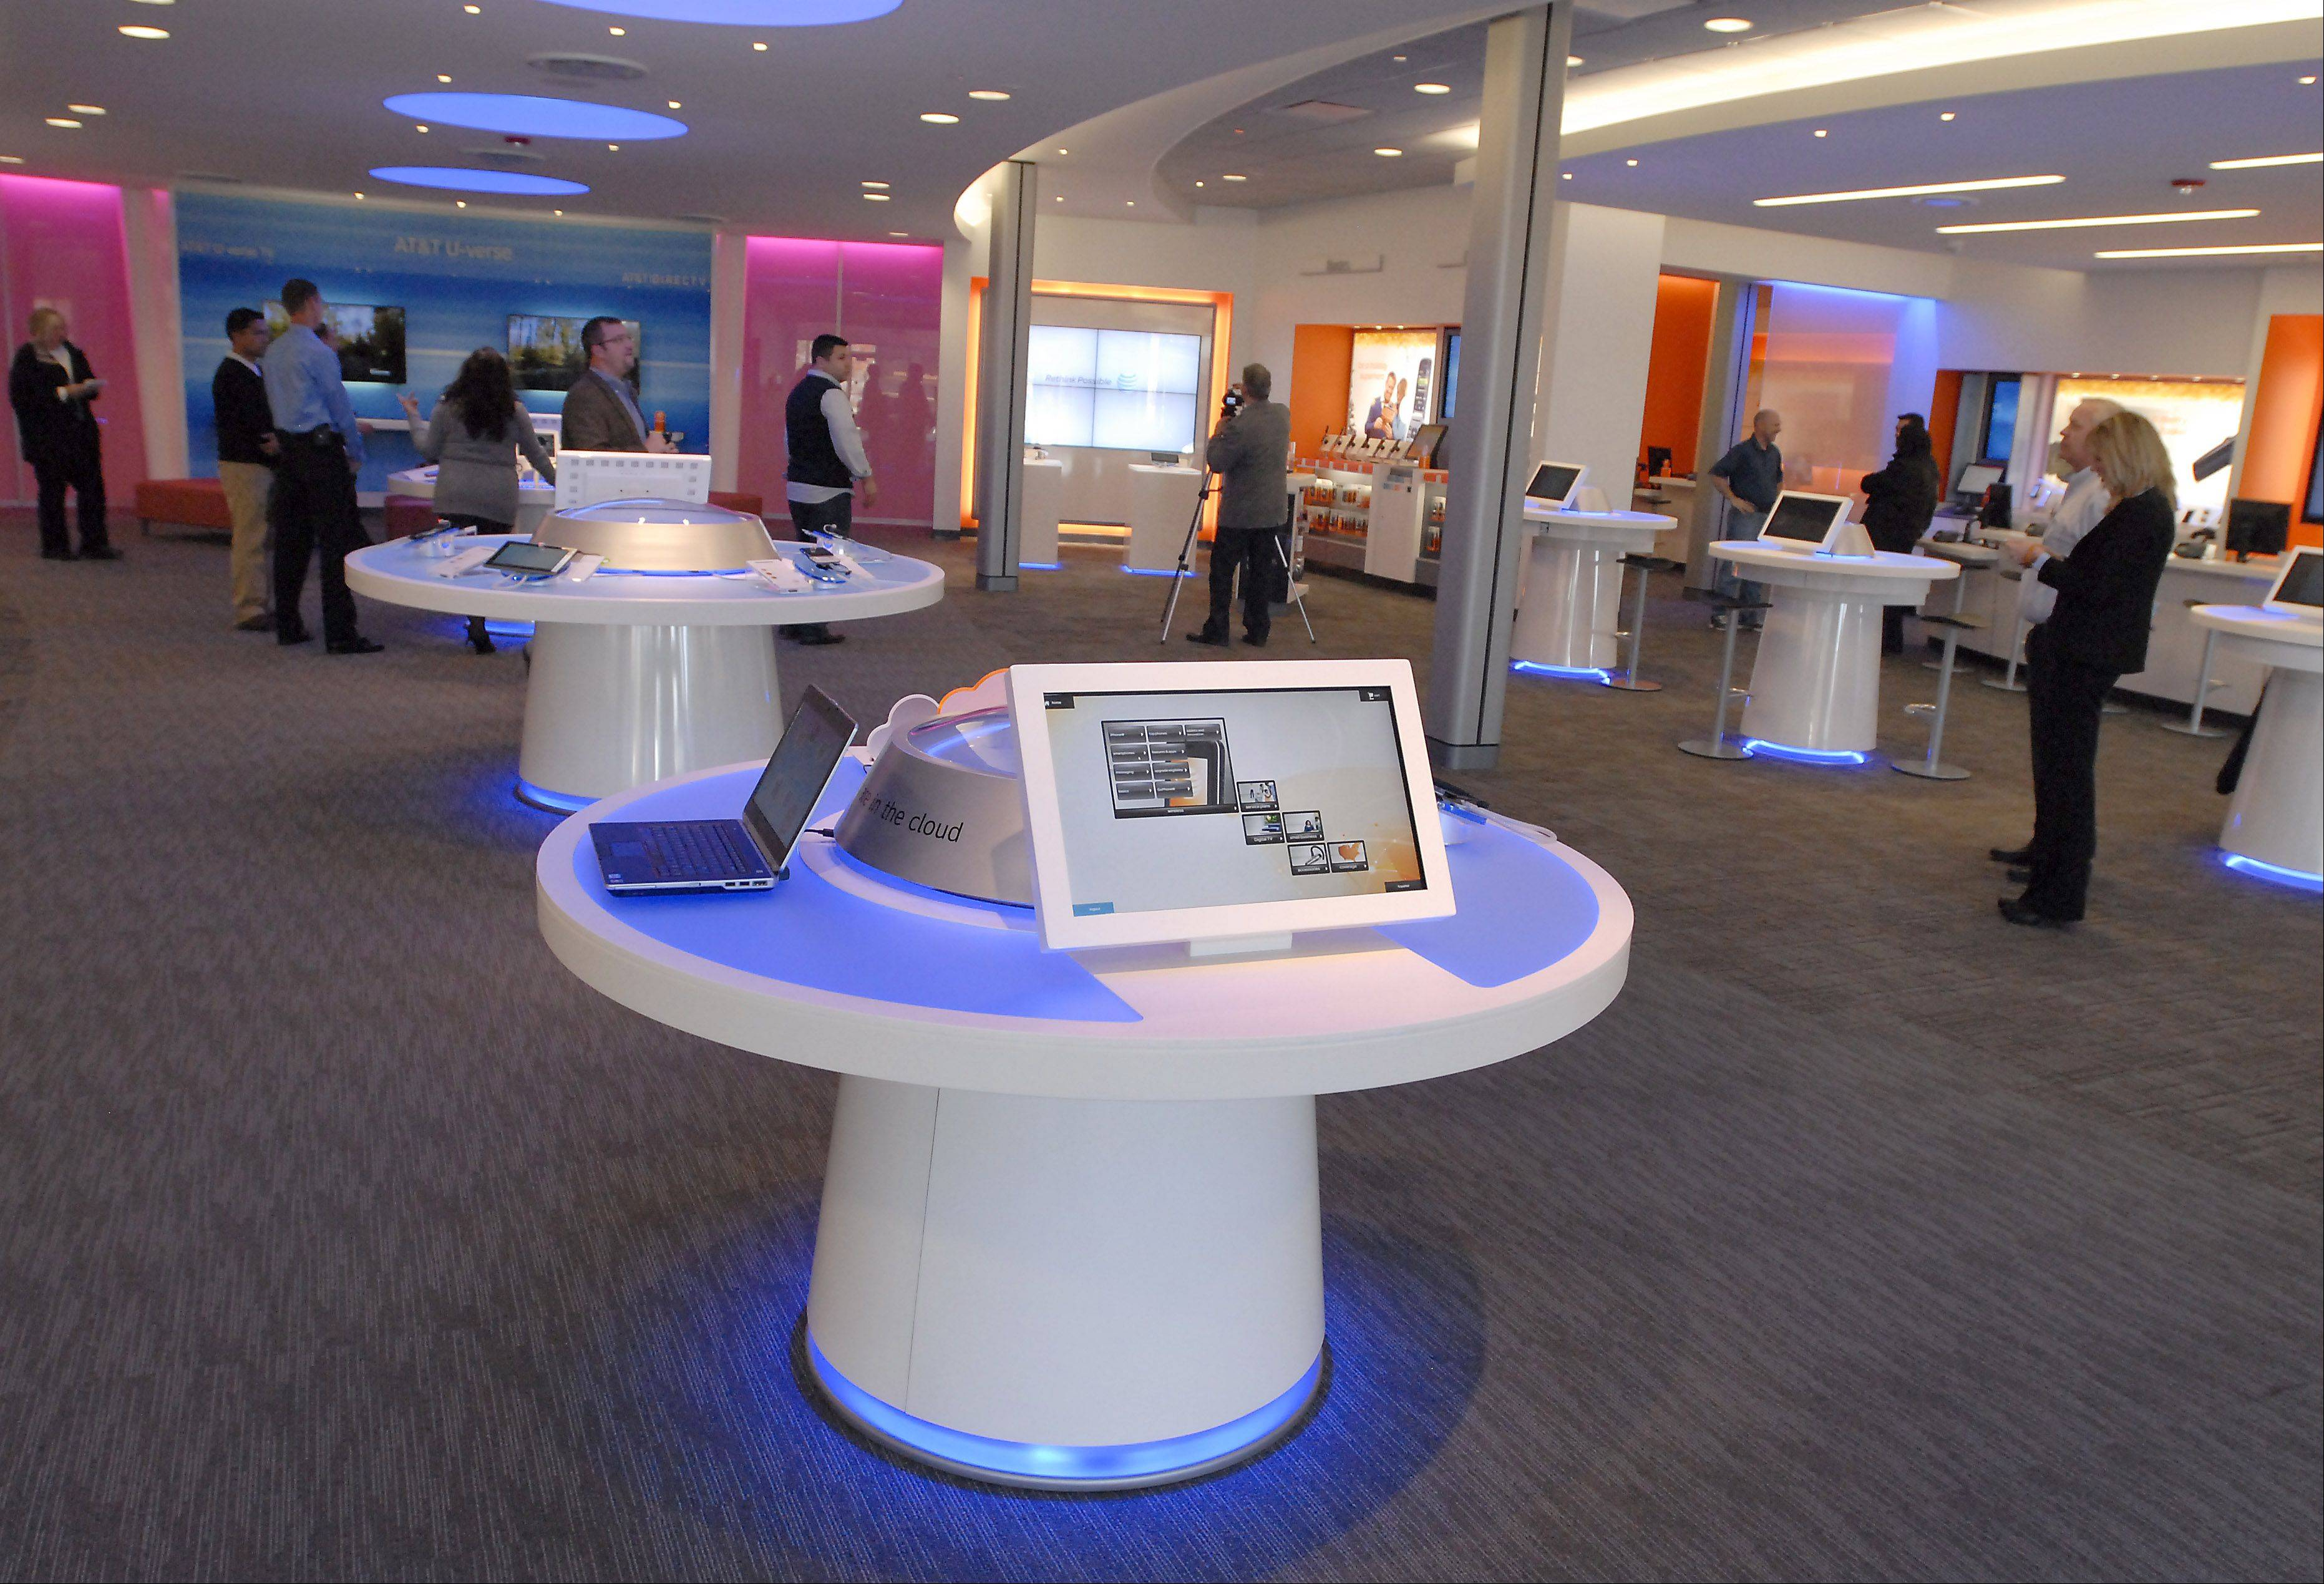 The new AT&T Innovation Center in Arlington Heights will be the only one of its kind in the country.